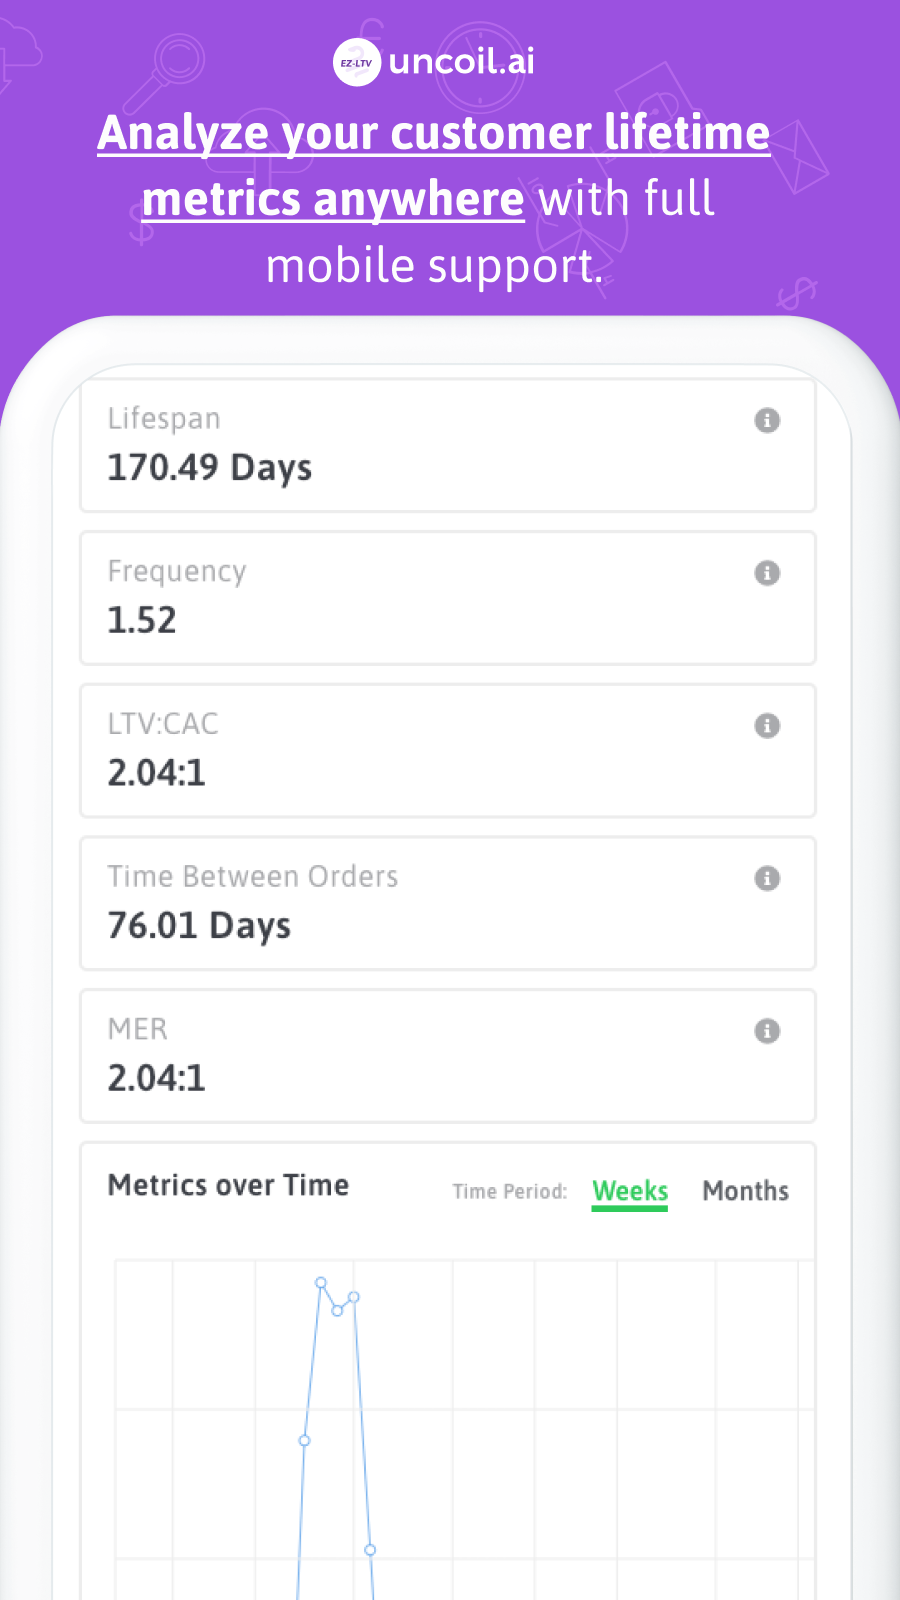 Analyze your customer LTV metrics anywhere with mobile support.